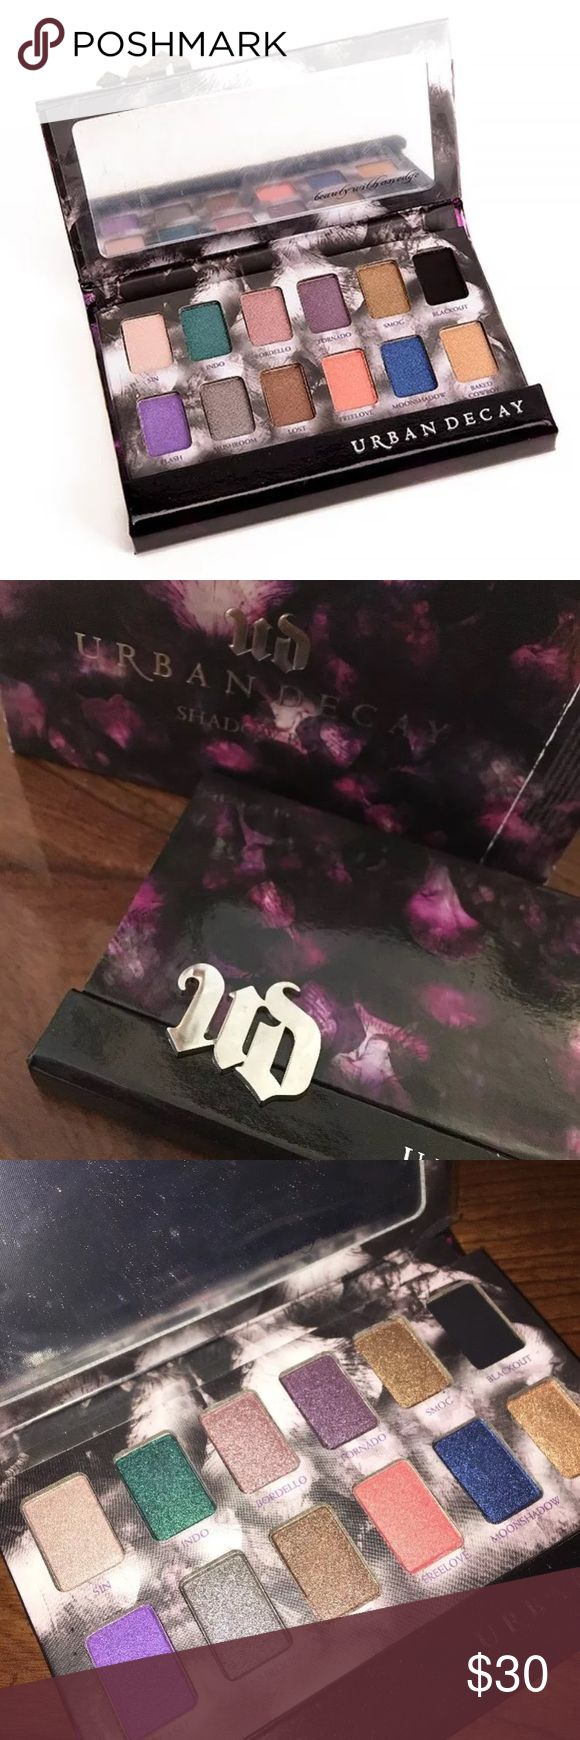 Urban Decay ShadowBox AUTHENTIC NEW WITH BOX URBAN DECAY SHADOW BOX PALETTE Urban Decay Makeup Eyeshadow